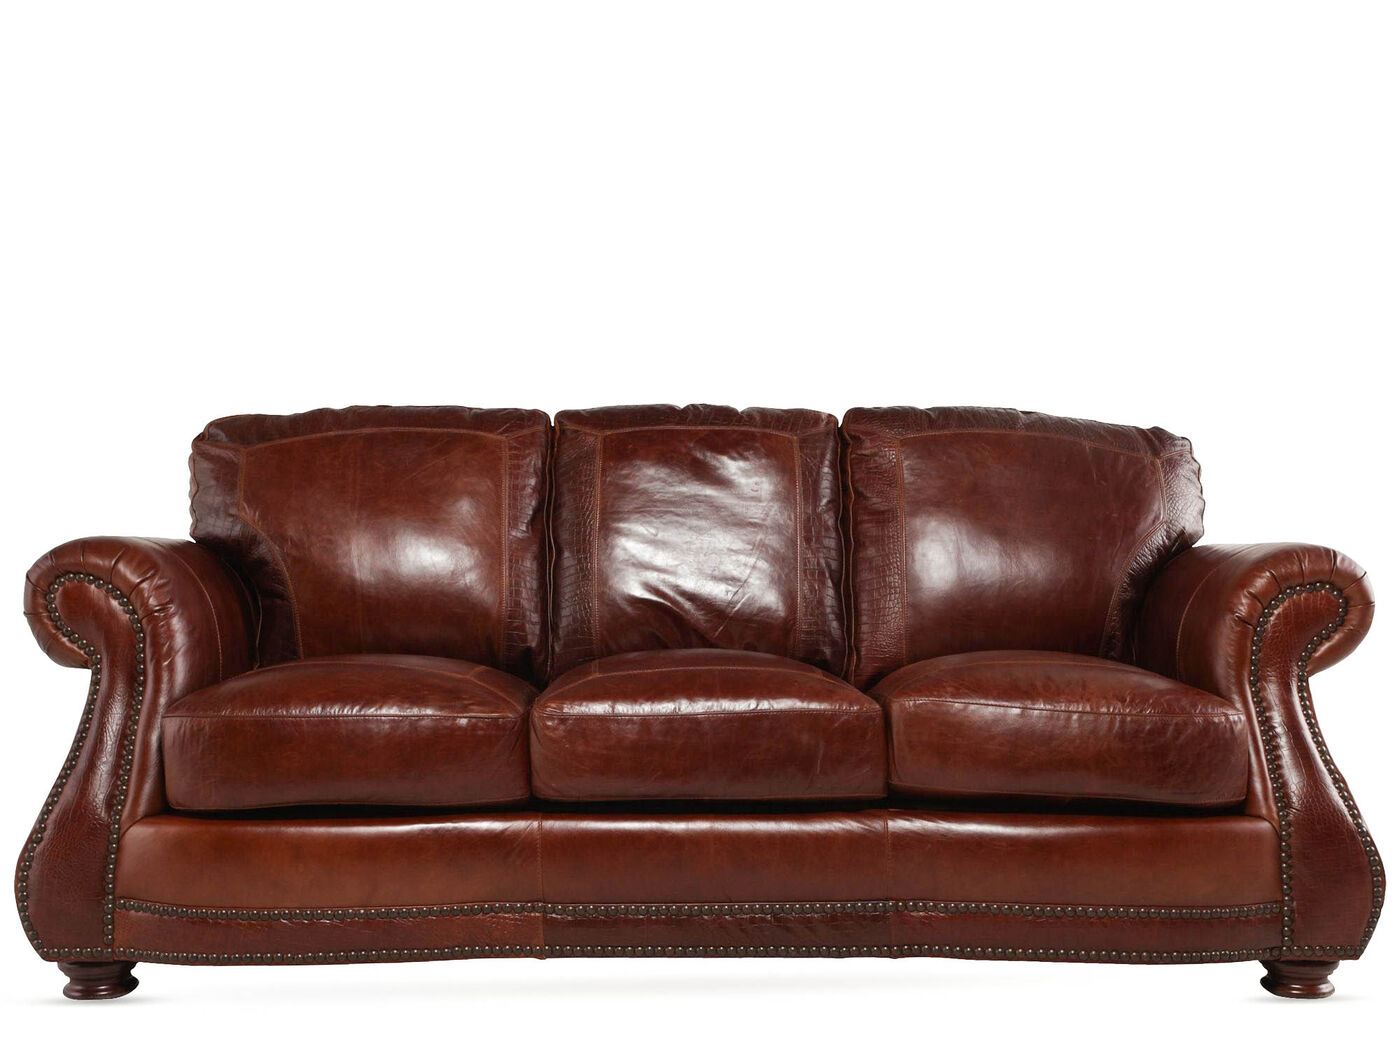 Leather Rolled Arm 88 Sofa In Brandy Mathis Brothers Furniture ~ Sofa And Loveseat Leather